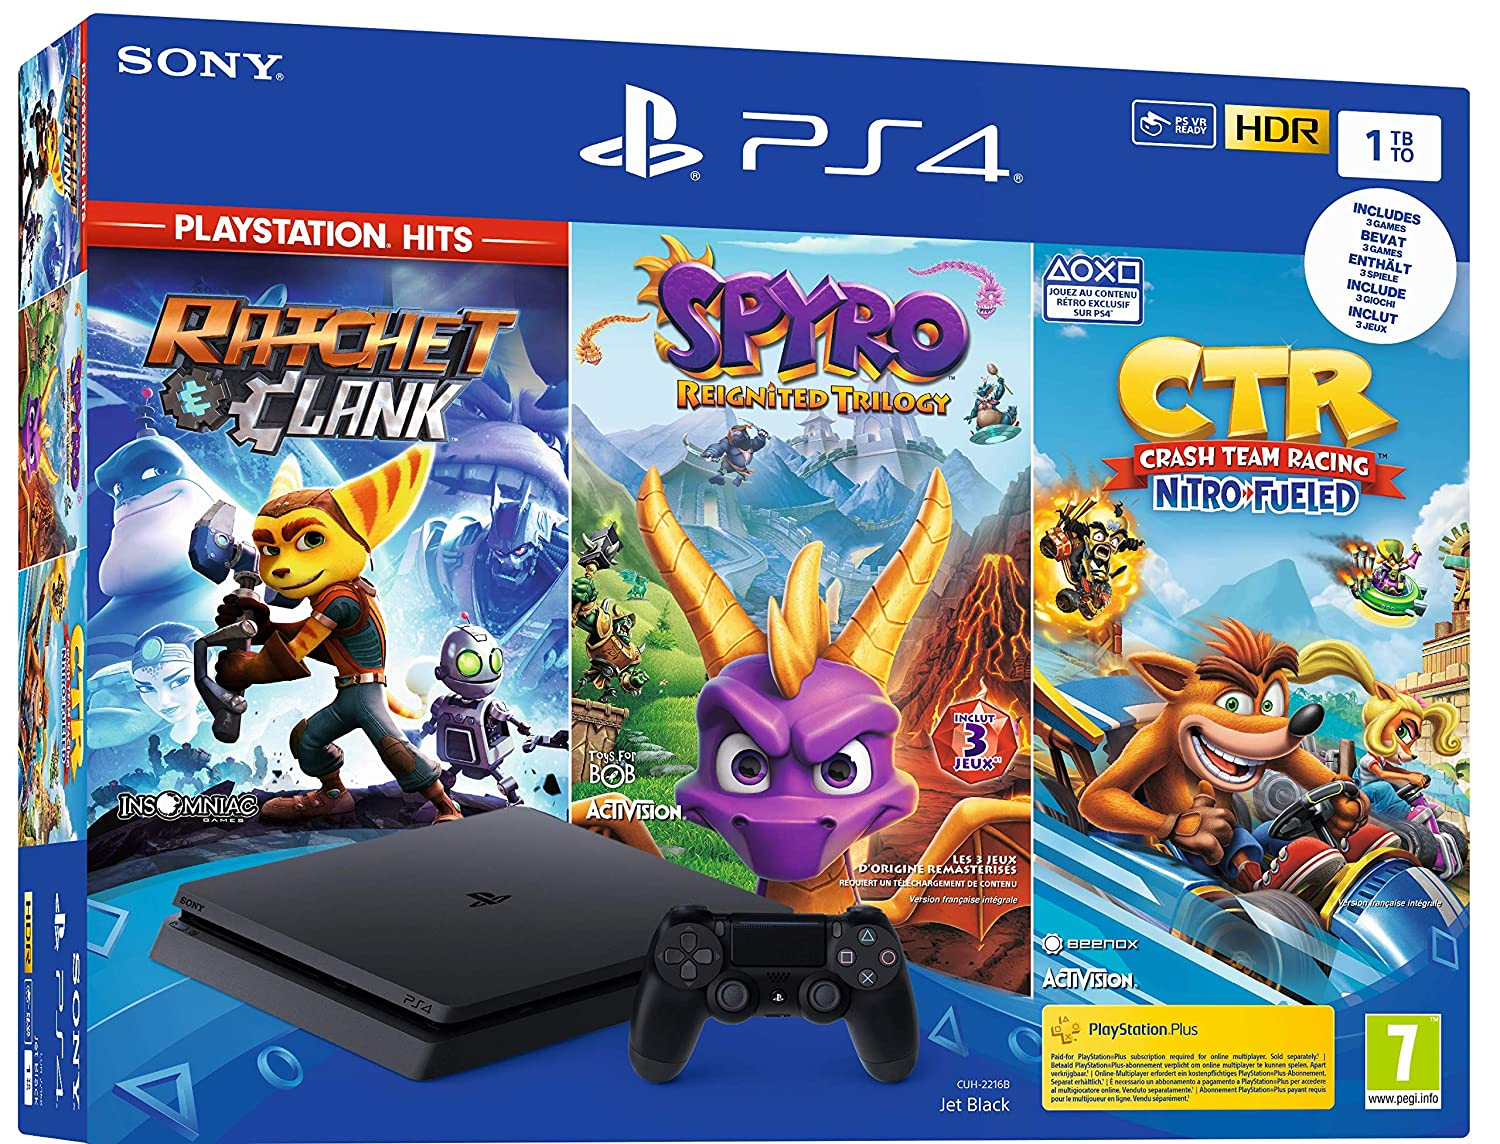 PS4 1 To noire + Crash Team Racing + Spyro + RC Hits